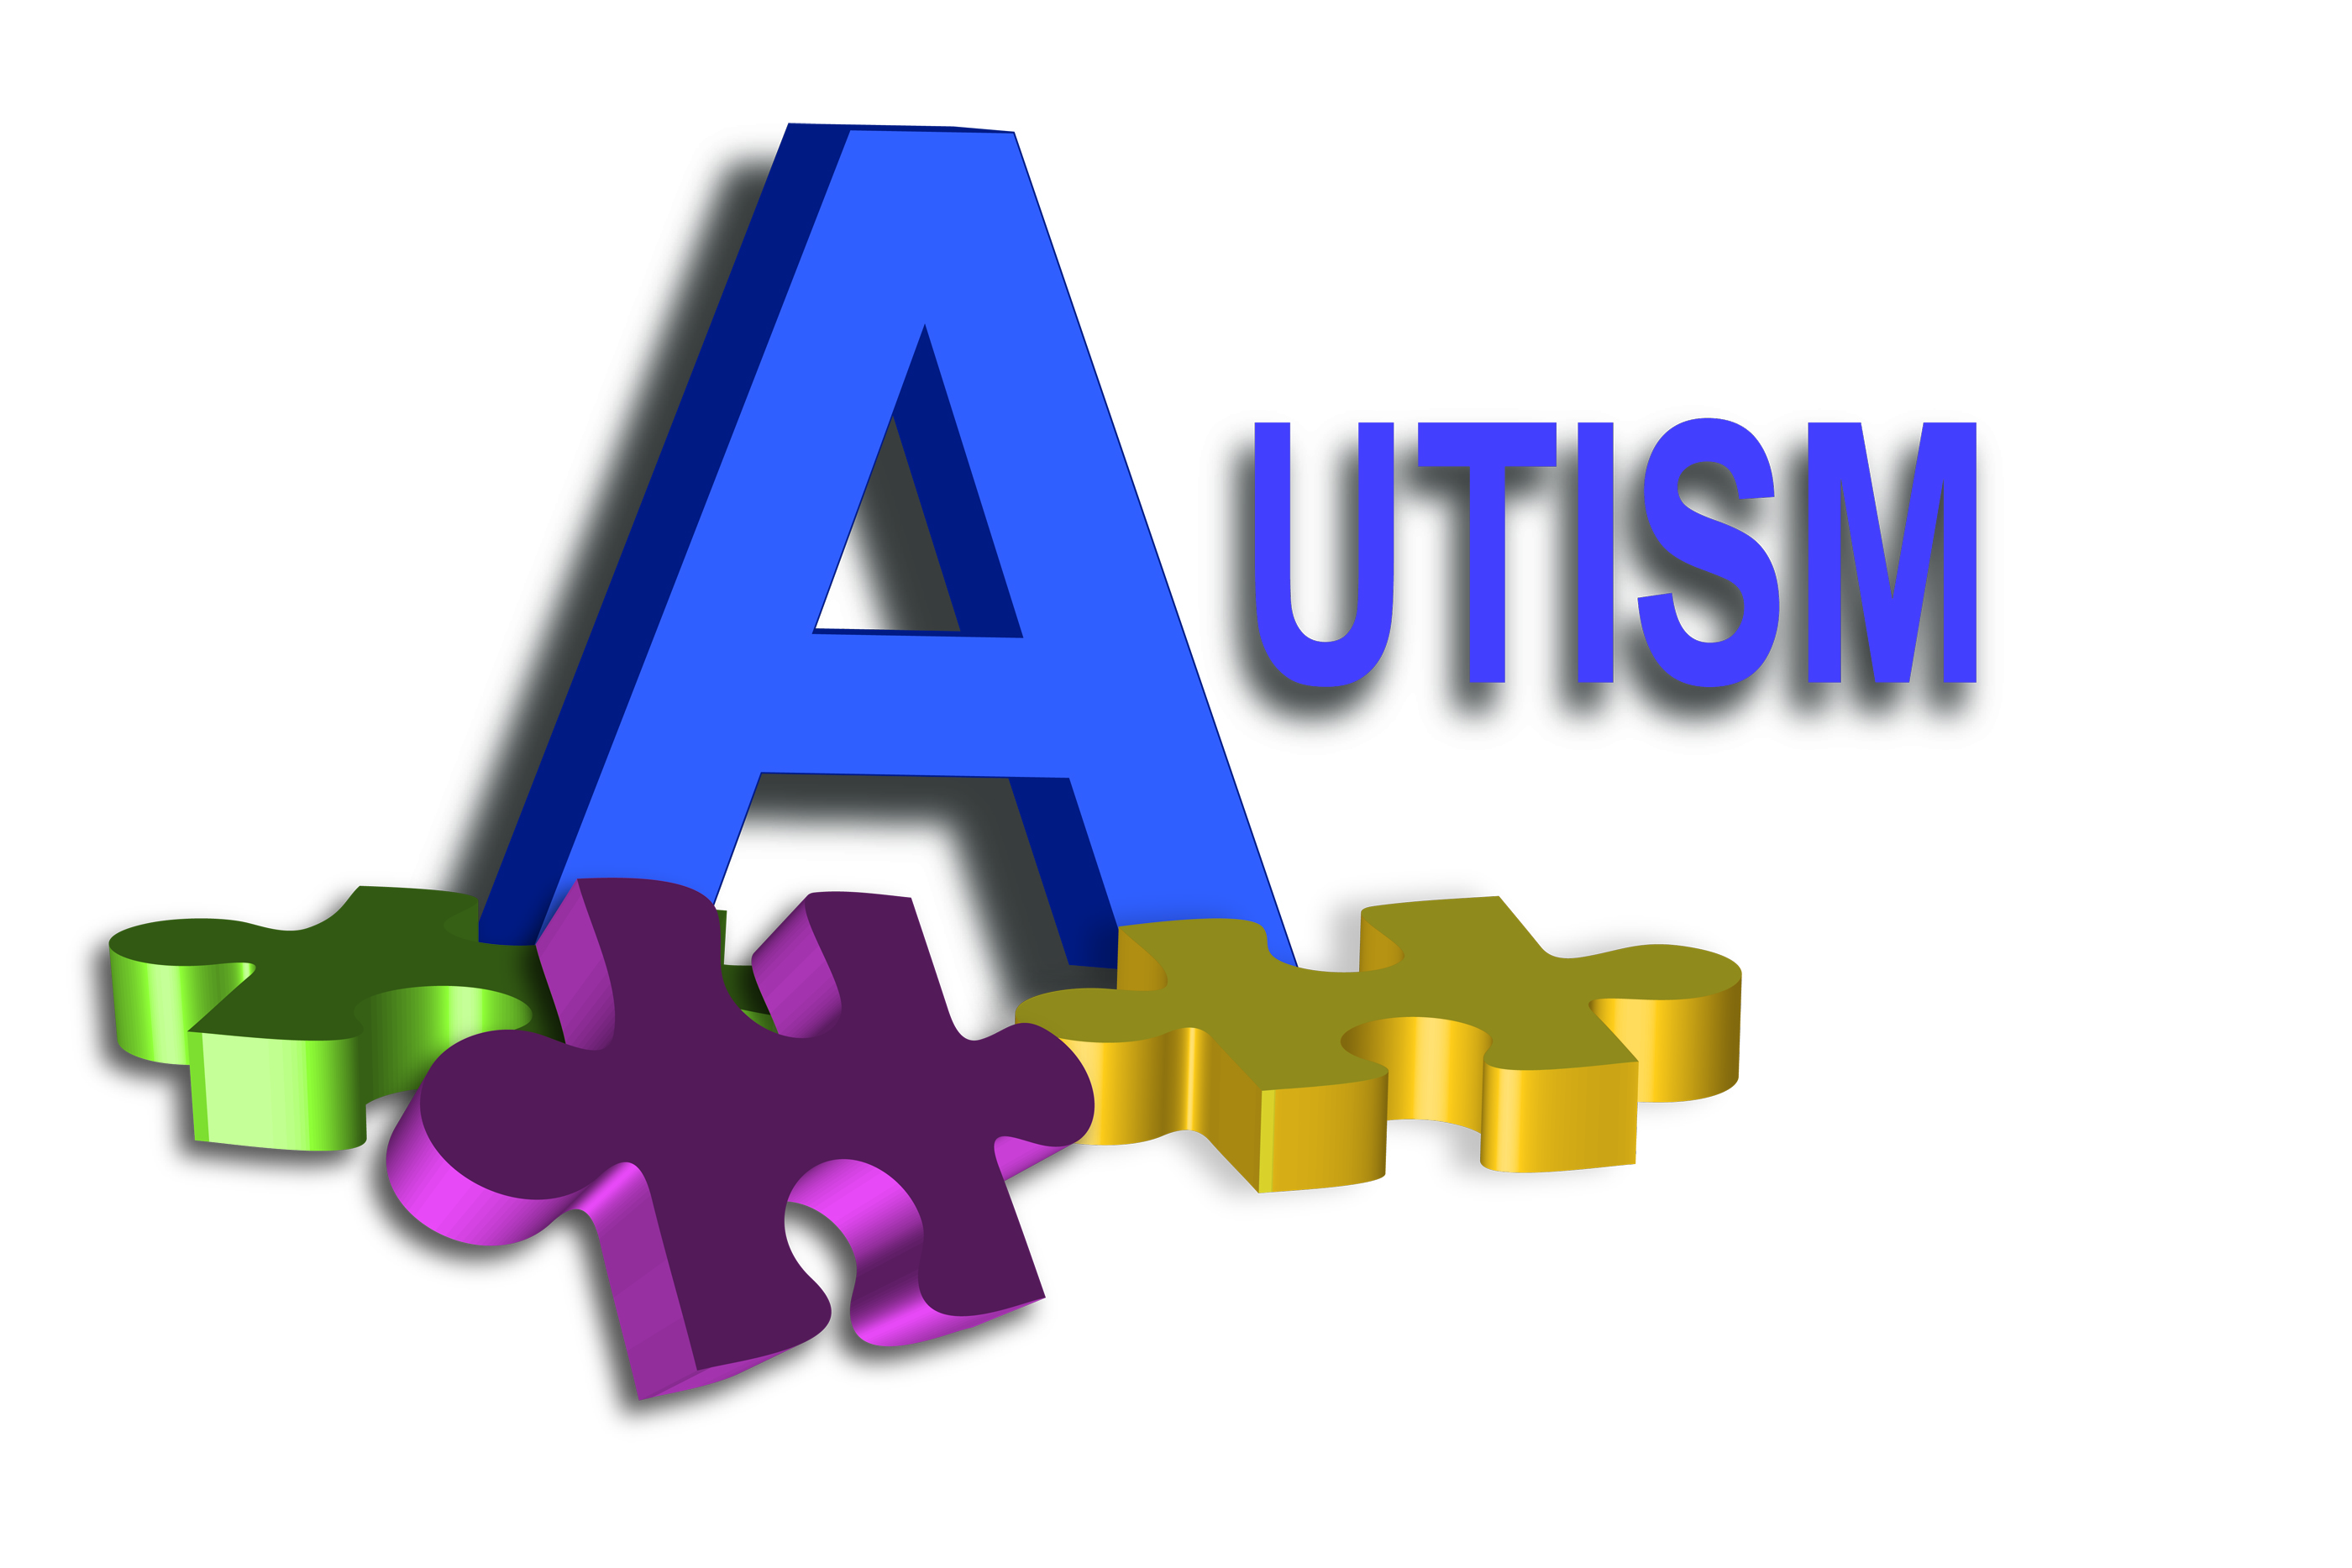 My life with autism is a challenging puzzle autism daily newscast buycottarizona Image collections